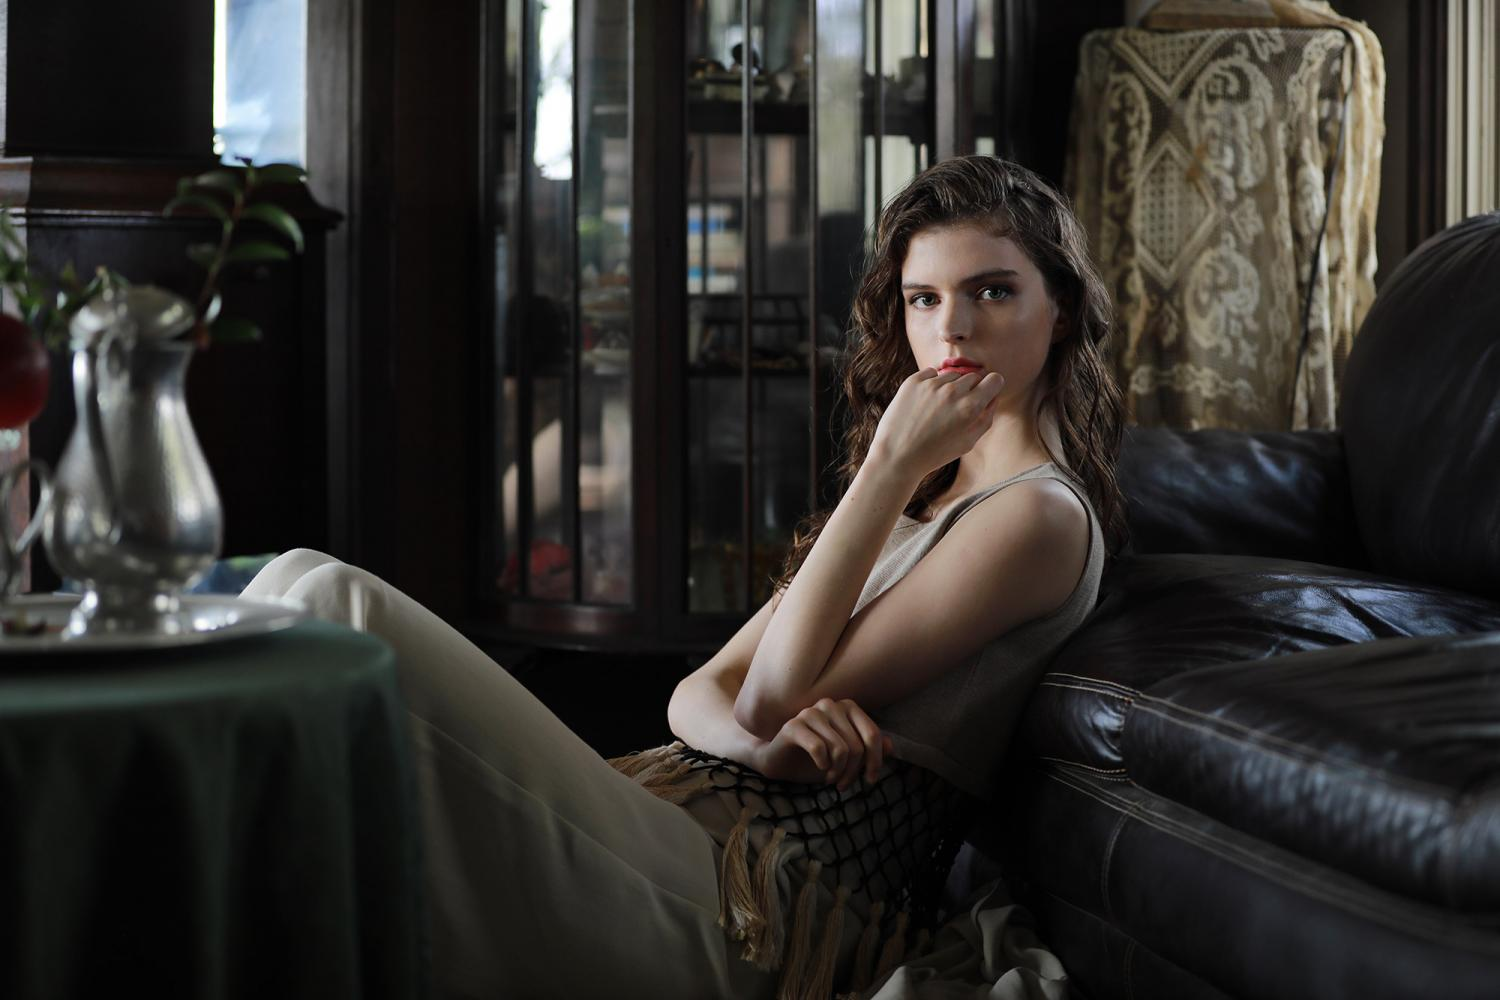 Long-haired young woman in elegant dress reclining against a leather couch, photographed with the Canon 70-200mm f2.8L IS III